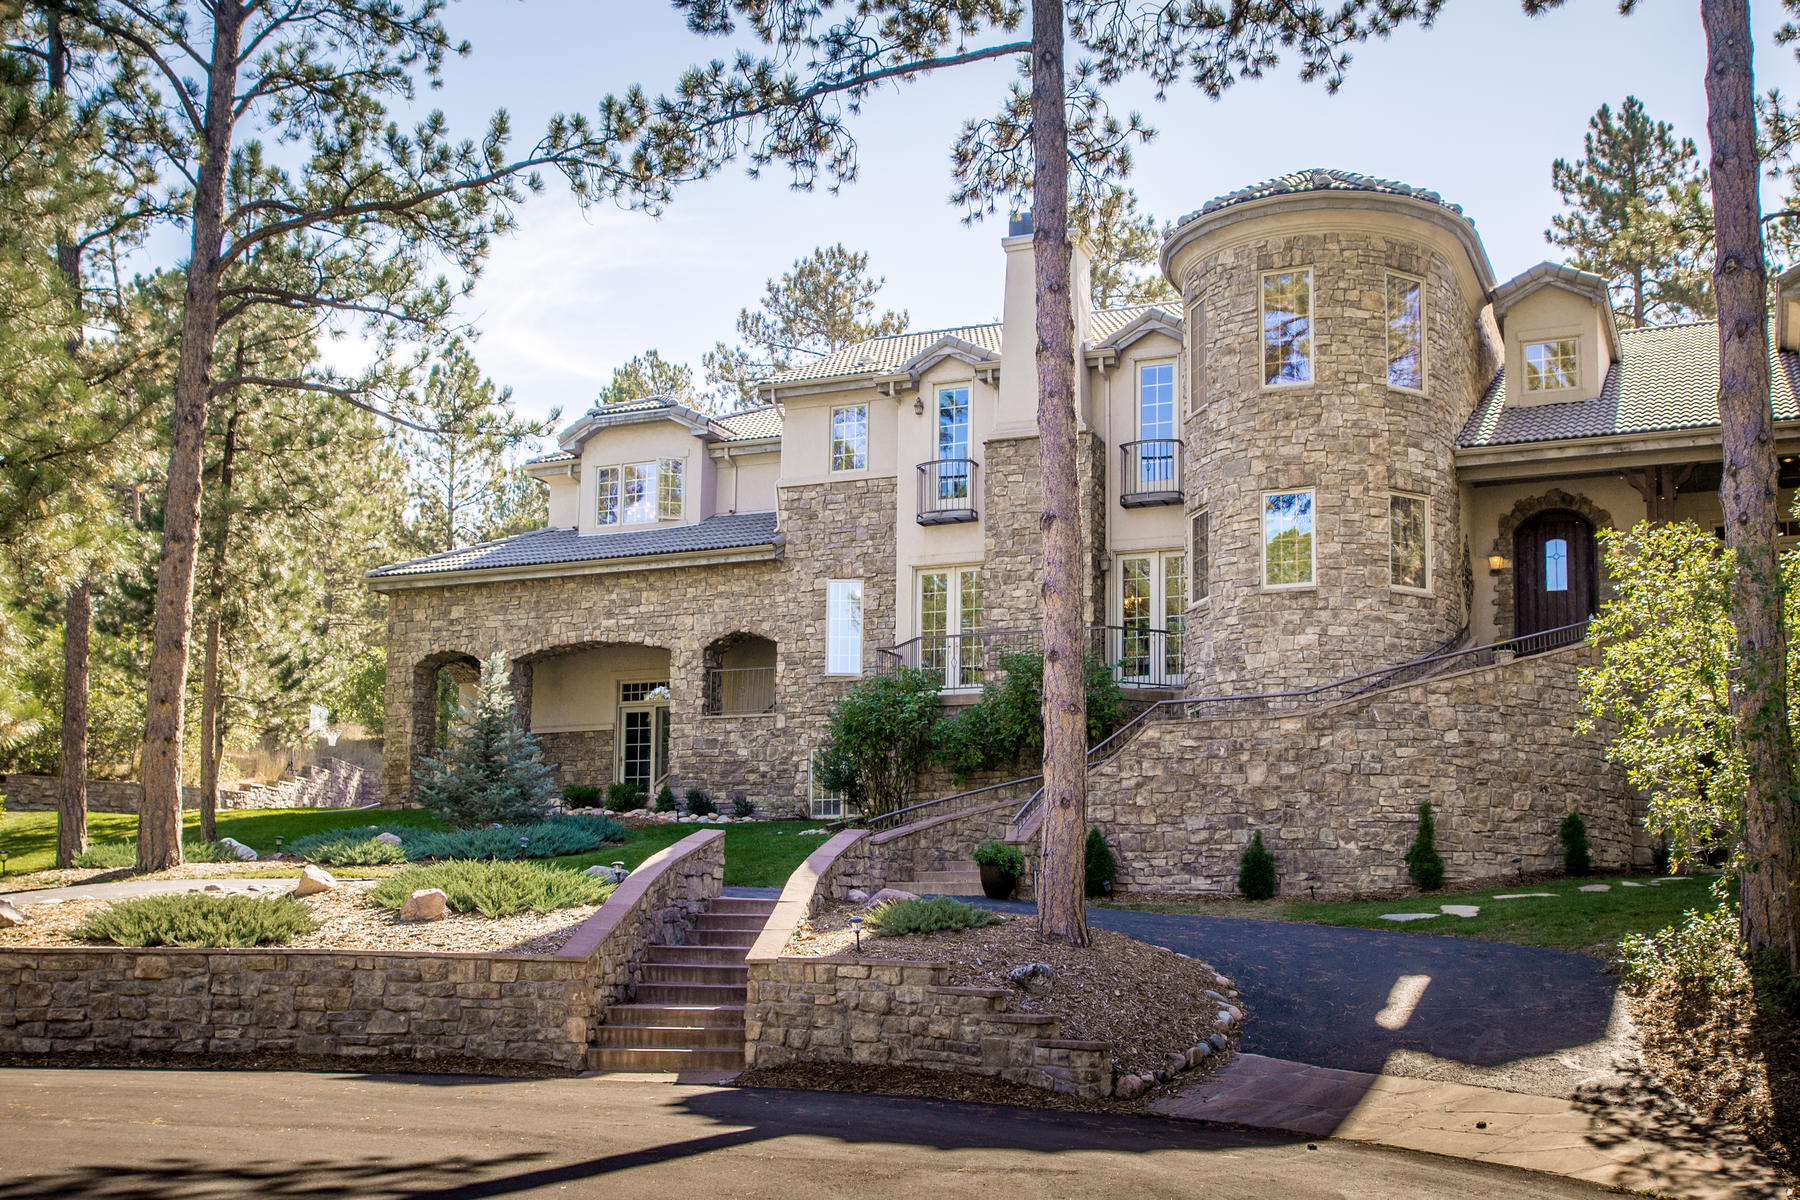 Single Family Home for Active at Gorgeous Castle Pines Village estate on the prestigious Paragon Way 327 Paragon Way Castle Rock, Colorado 80108 United States